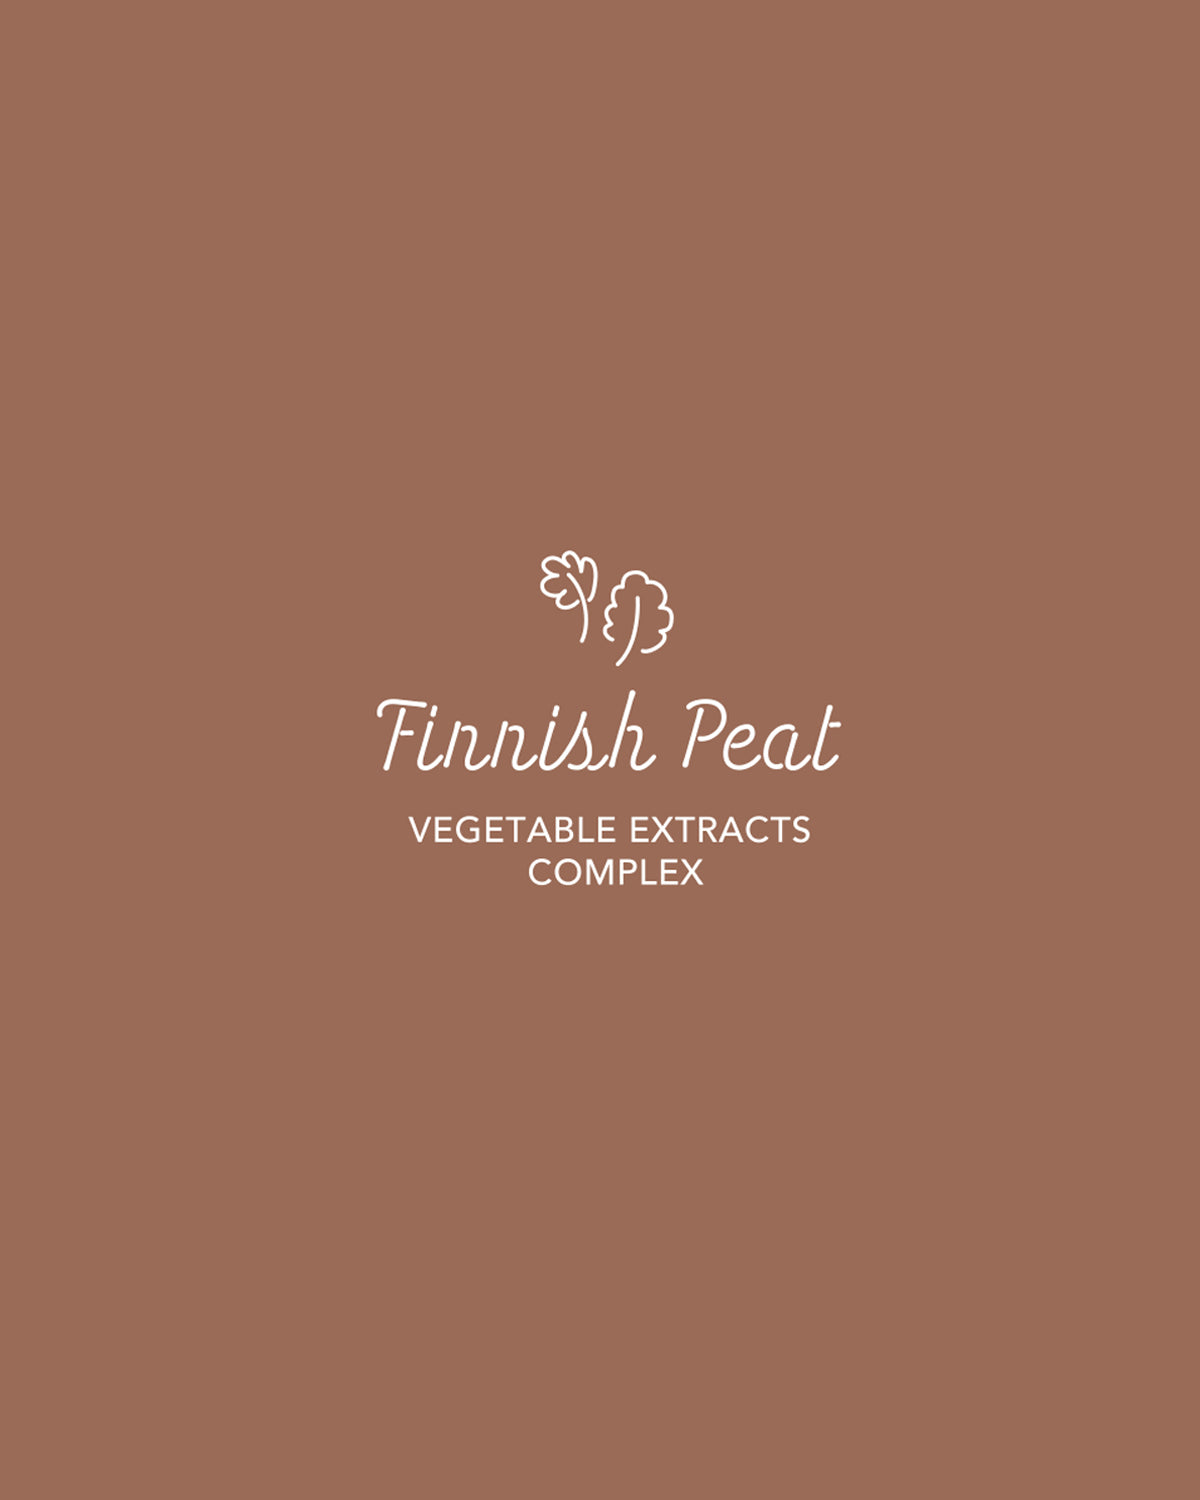 Finnish Peat!  Deep Clean Wash Off peat Mask formulated with 5% of original peat from Finland gently absorbs excess oil and impurities.   The Peat helps to tighten the appearance of pores and dissolve dead skin cells.